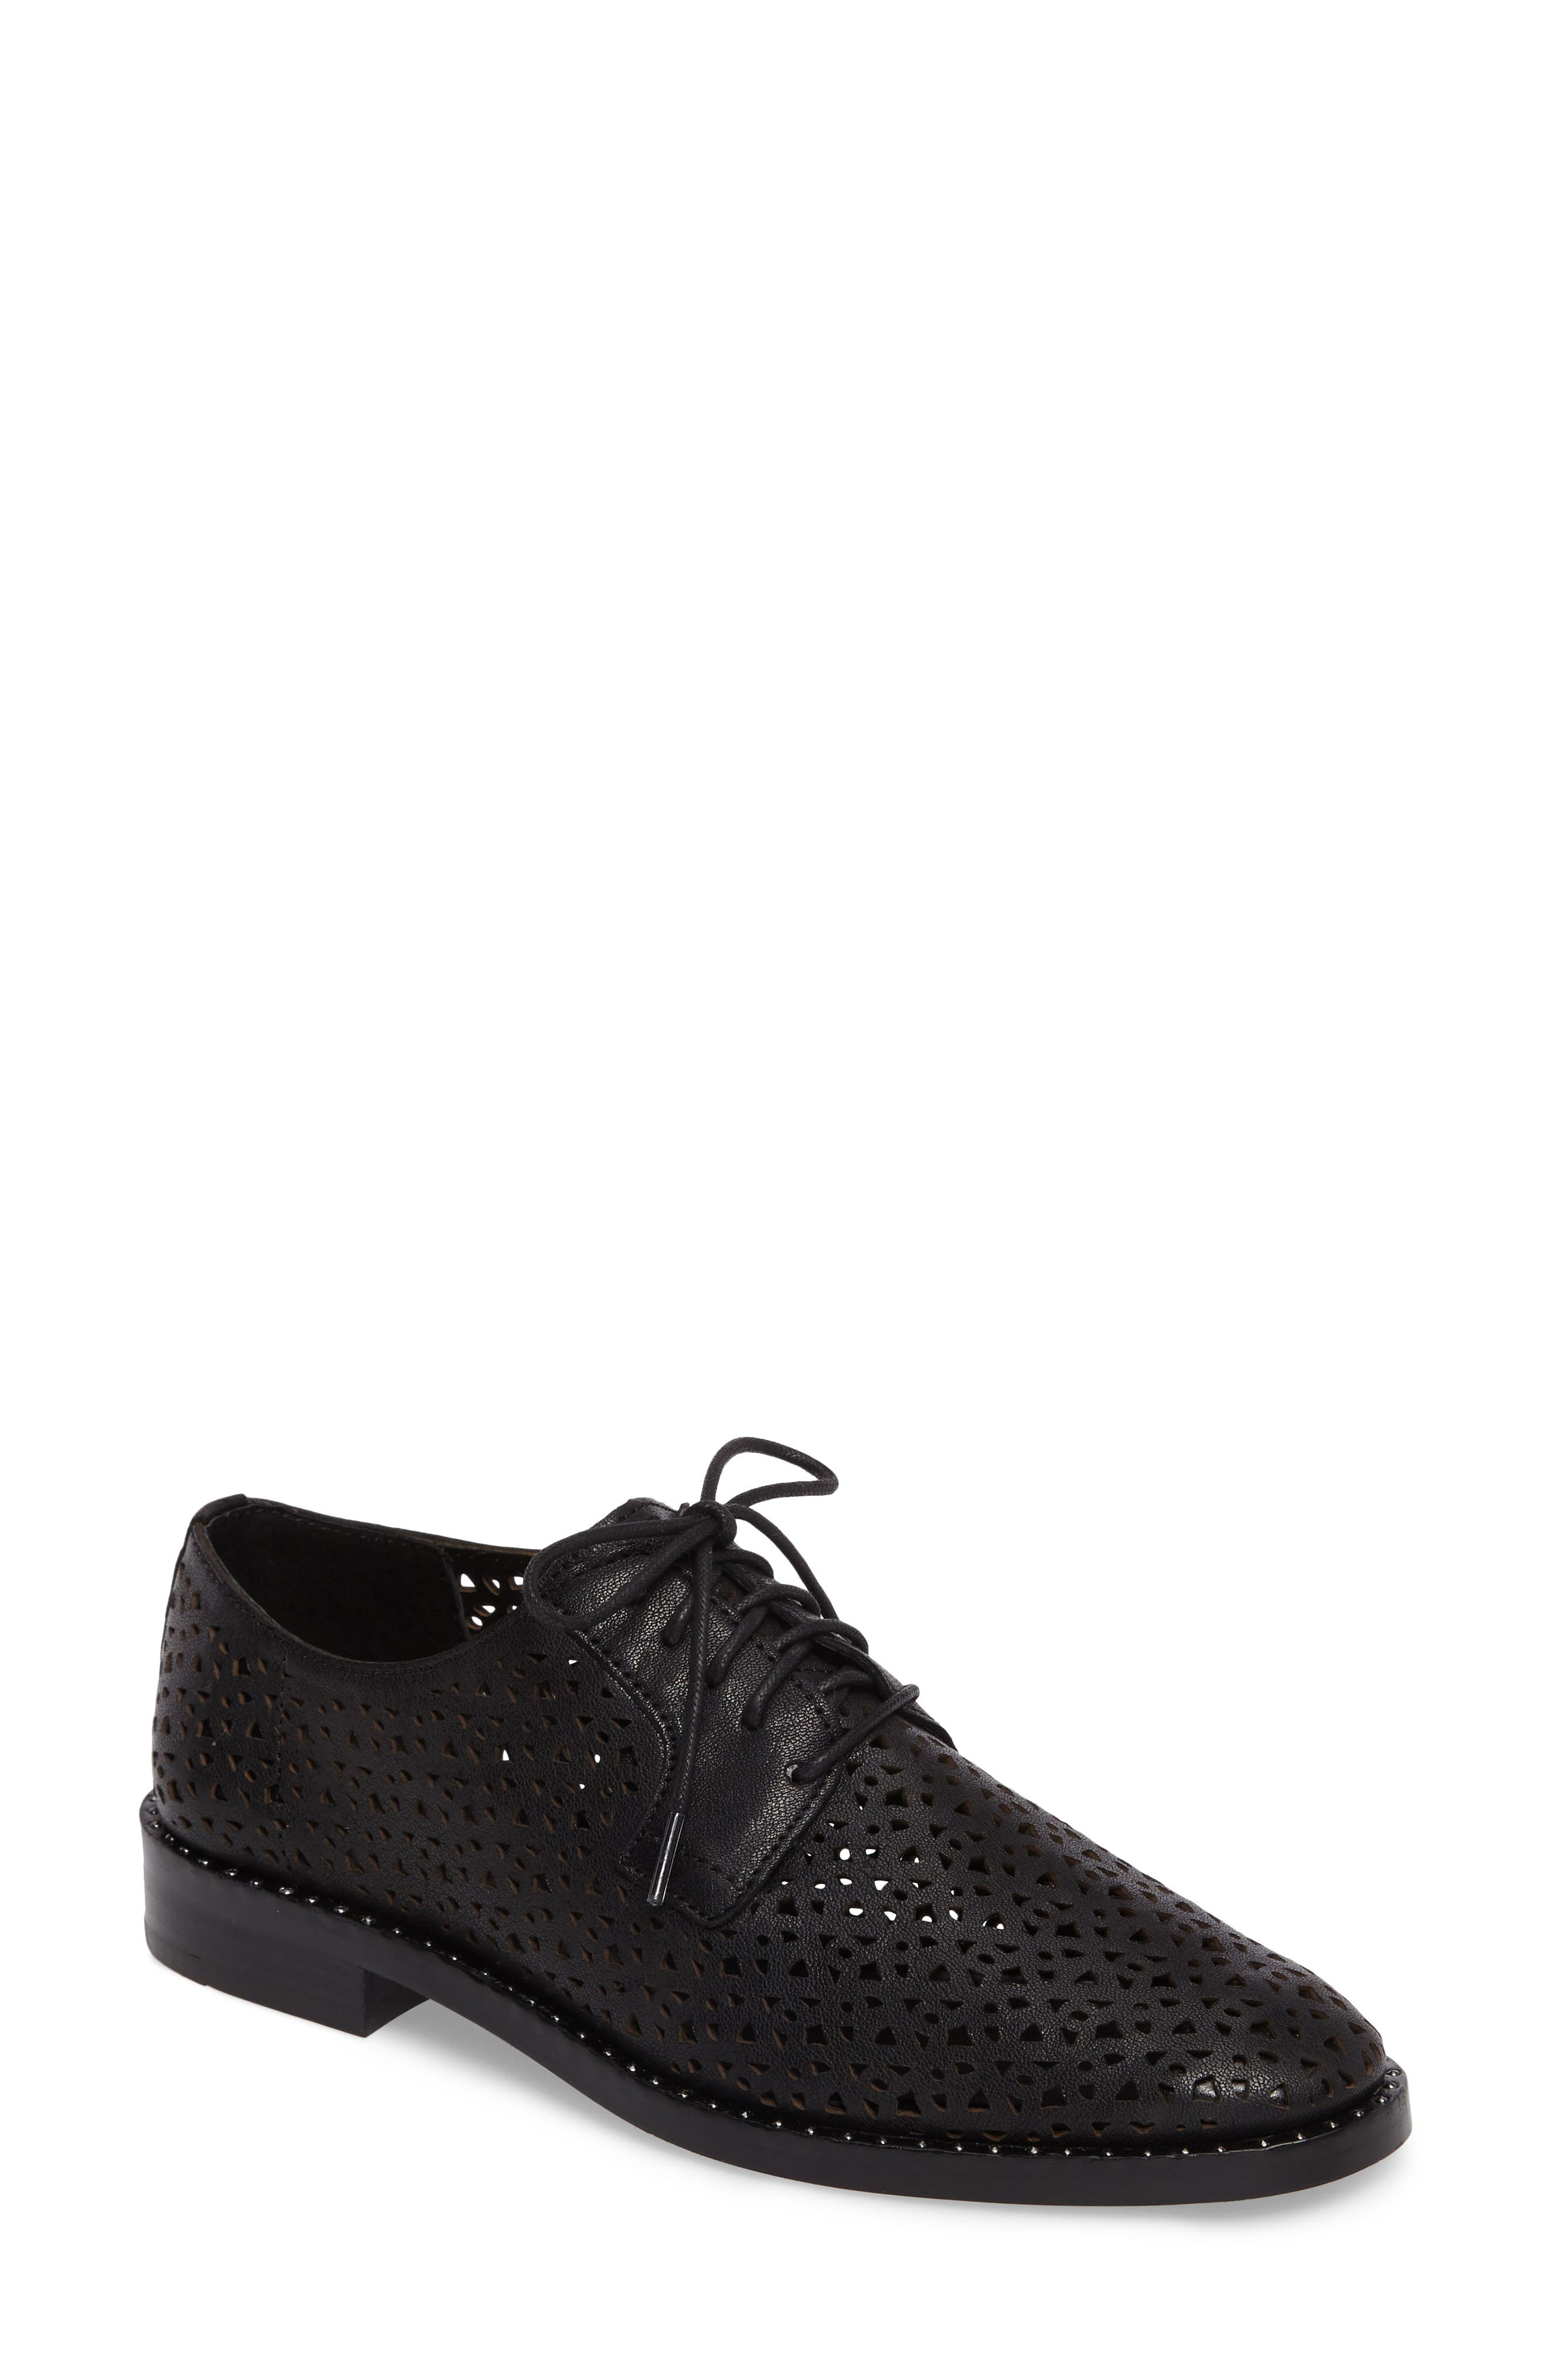 Main Image - Vince Camuto Lesta Geo Perforated Oxford (Women)